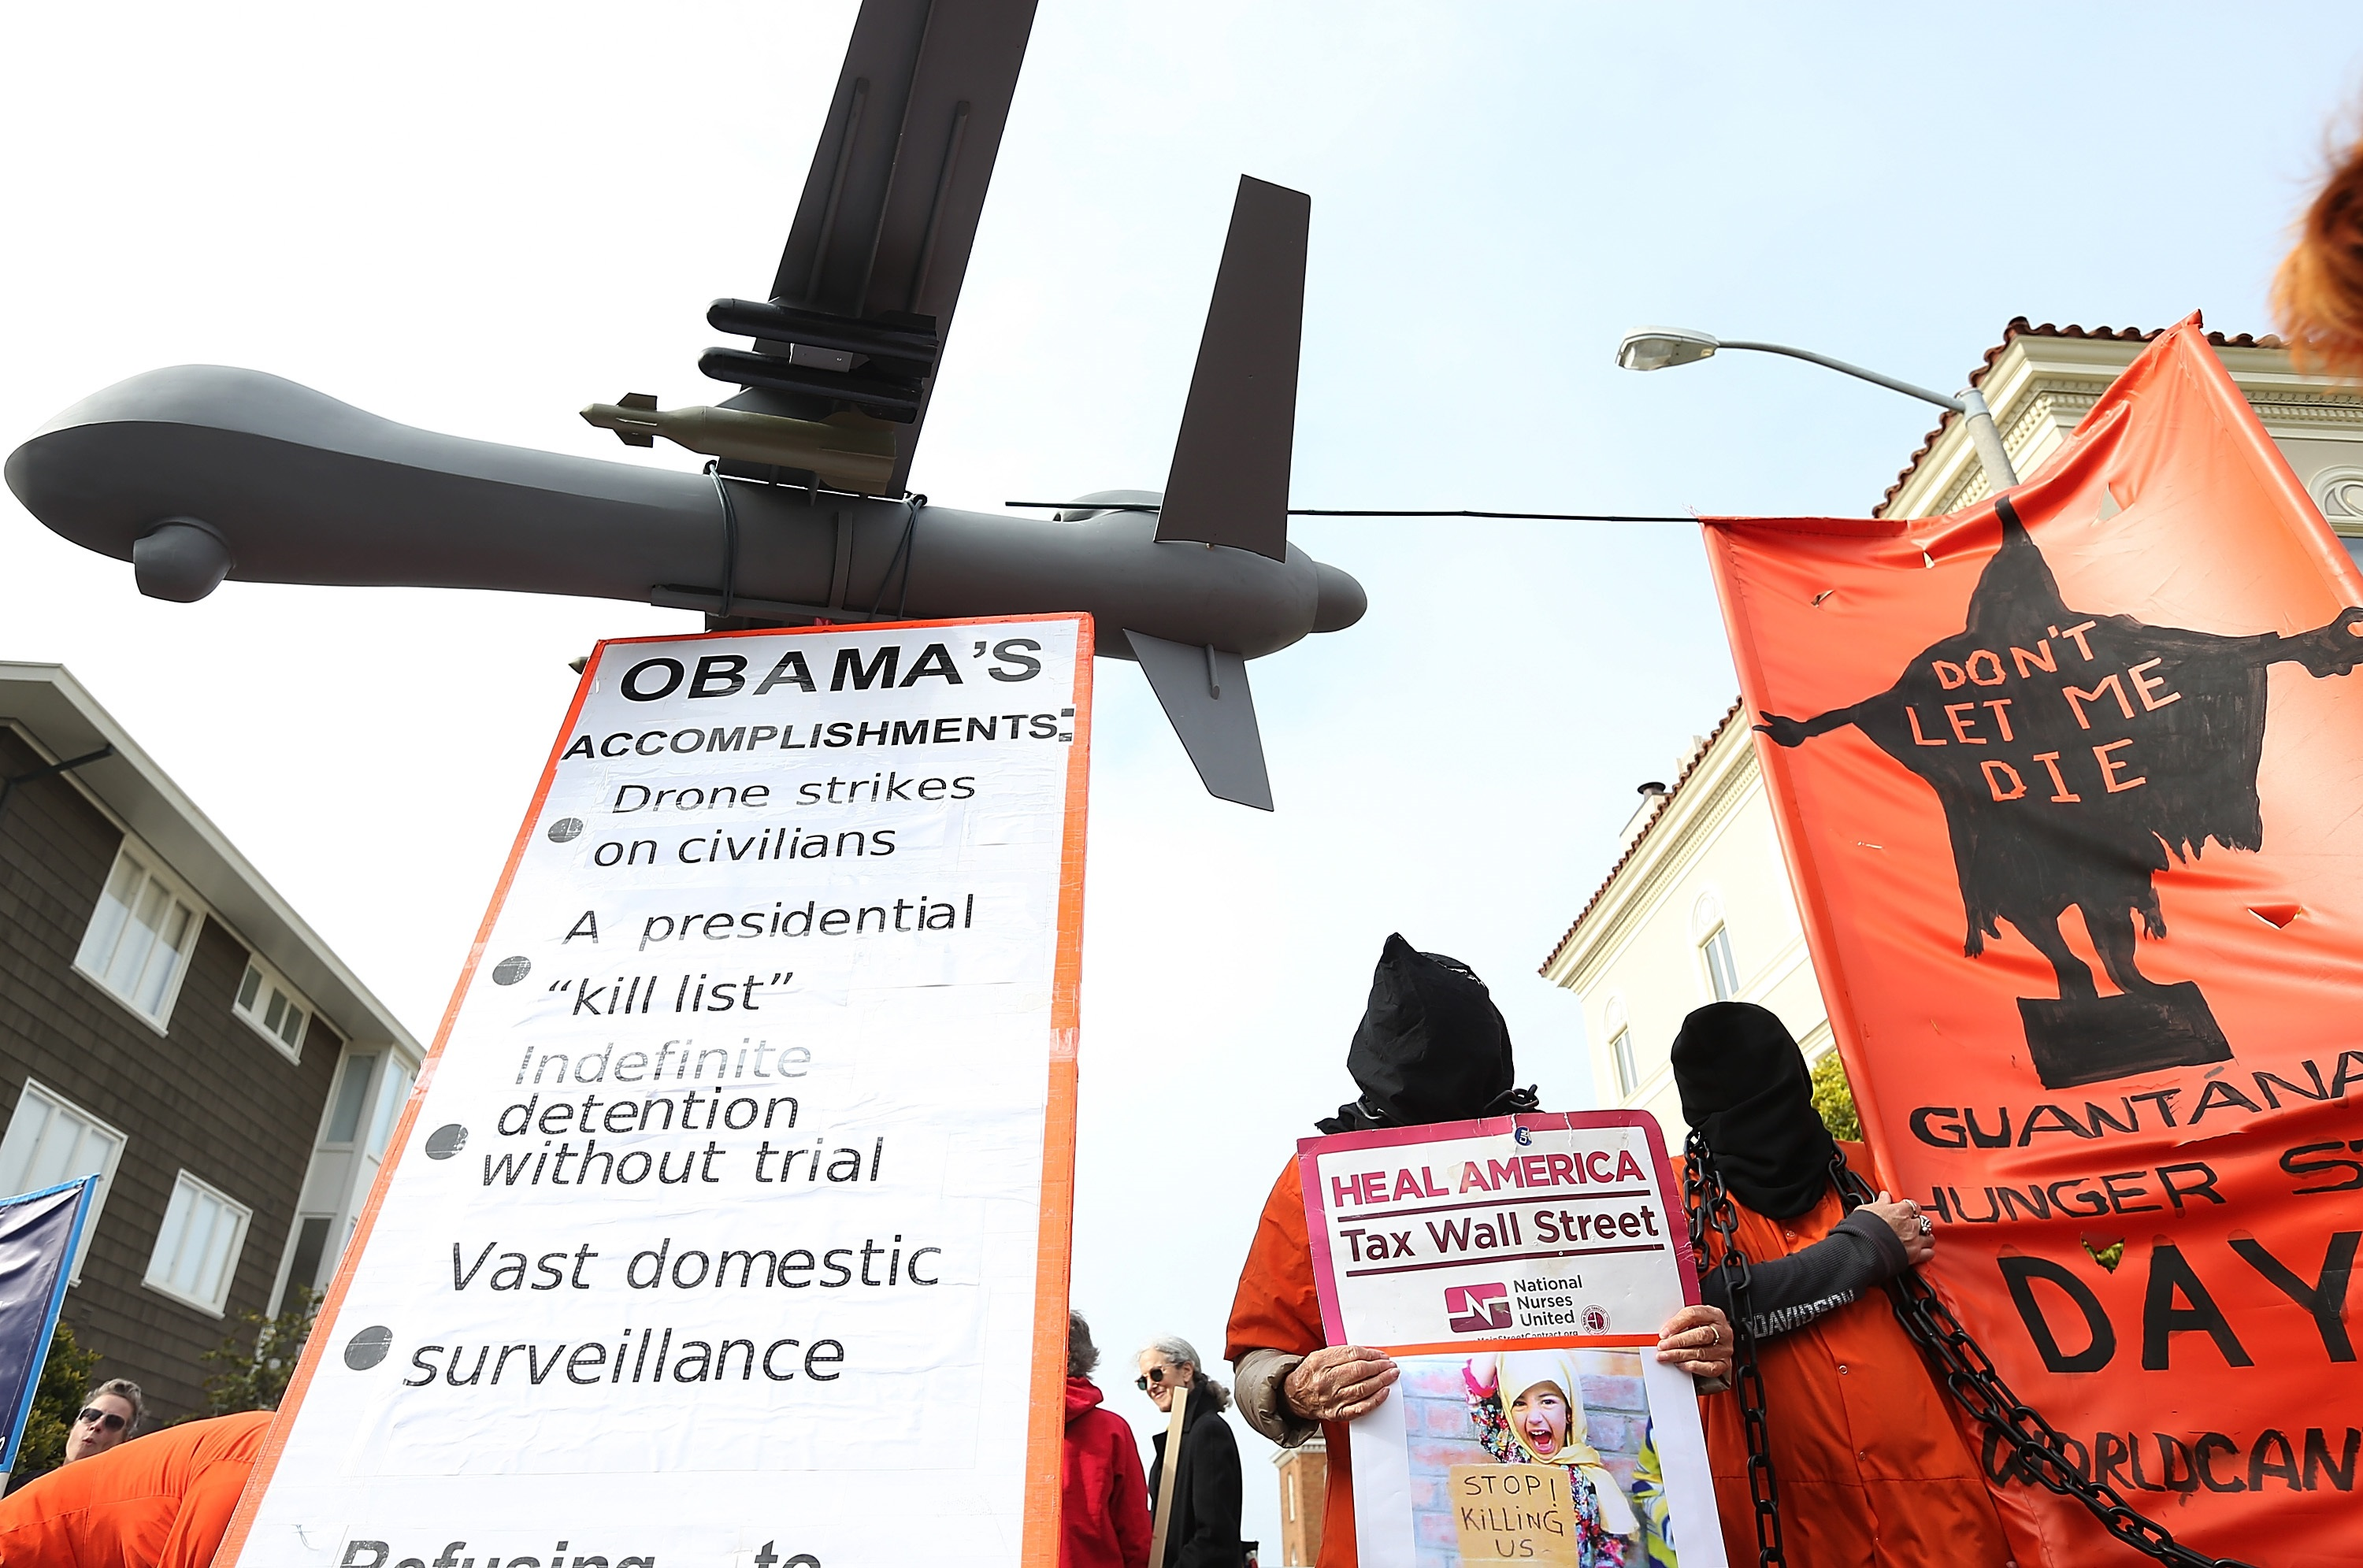 obama drone strikes vs bush with Black Politics on 2960 Women Stage Sub Zero Ukraine besides 2011 01 01 archive additionally American Cities May Have Aerial Drones By 2013 furthermore Meal Planning Weightloss b 5020167 furthermore Collectionmdwn Michael Jackson Dead Body Photos In The Helicopter.